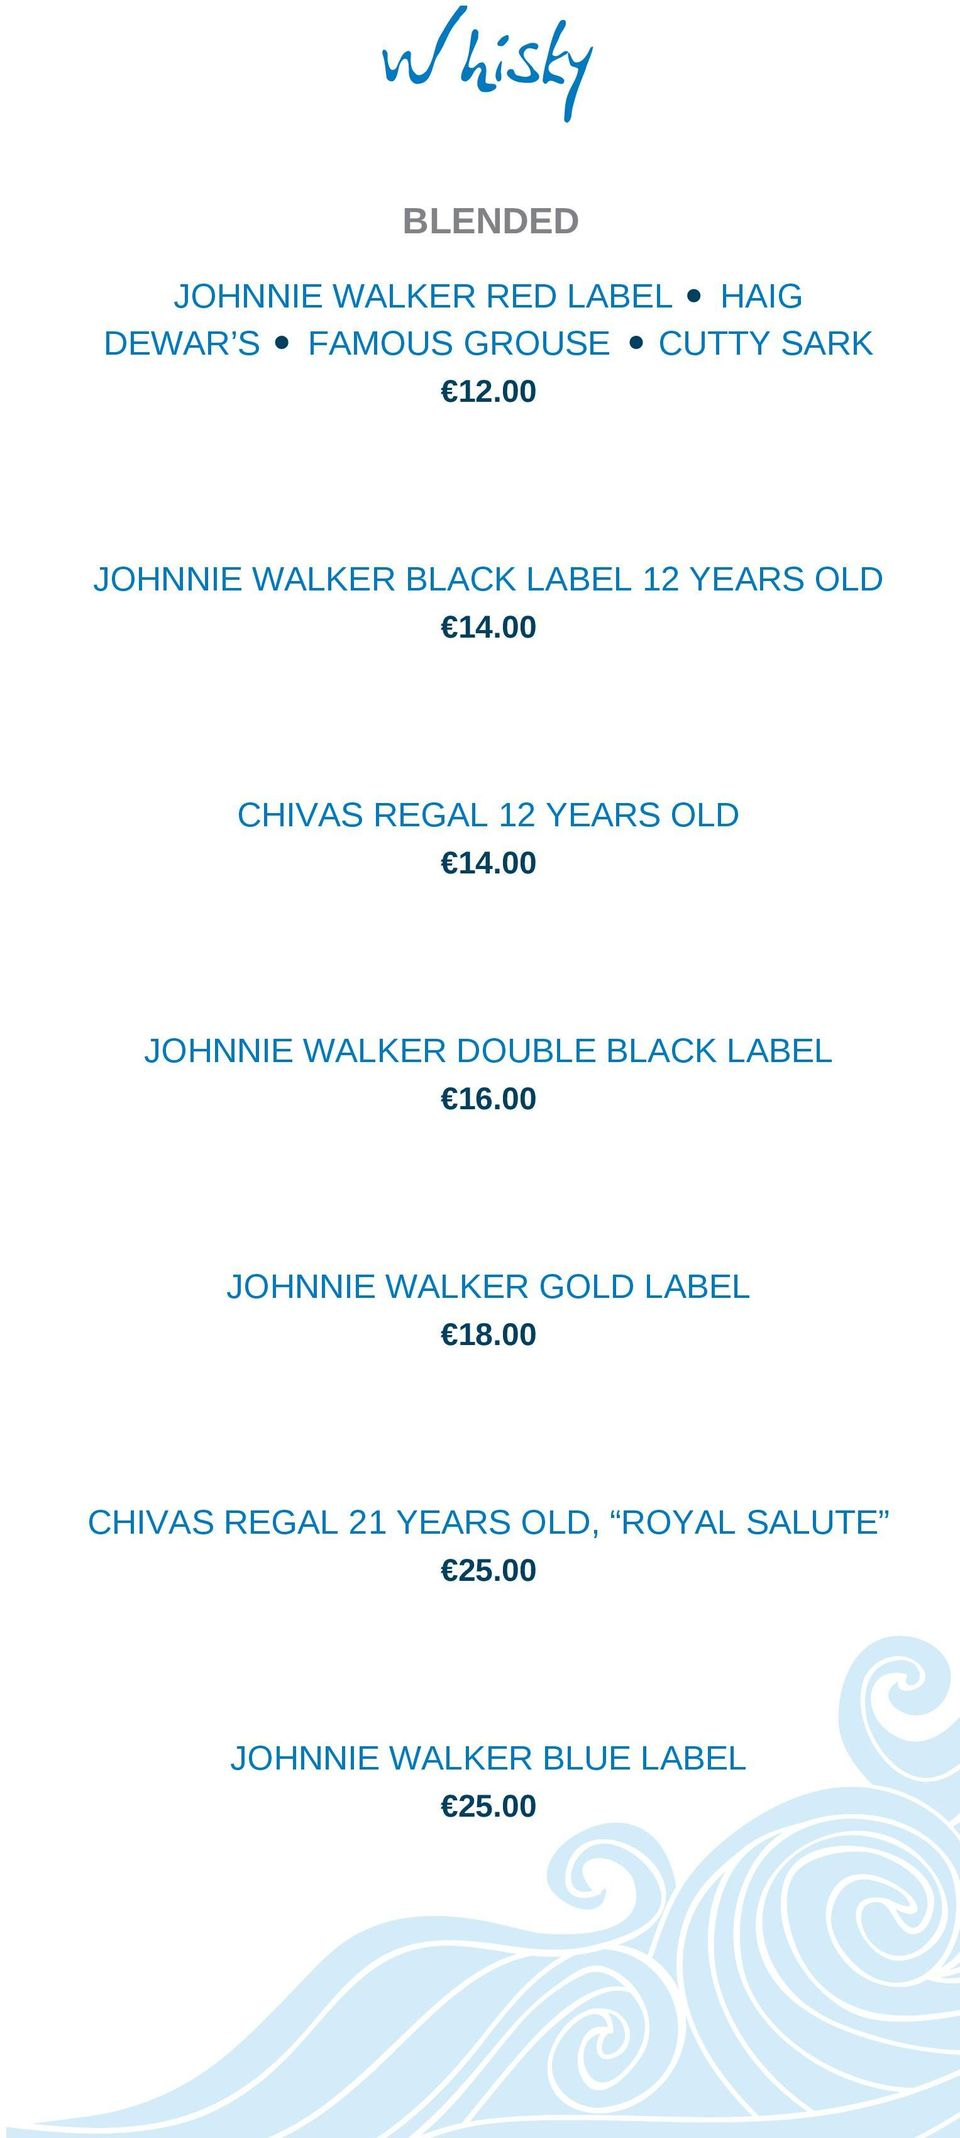 00 CHIVAS REGAL 12 YEARS OLD 14.00 JOHNNIE WALKER DOUBLE BLACK LABEL 16.